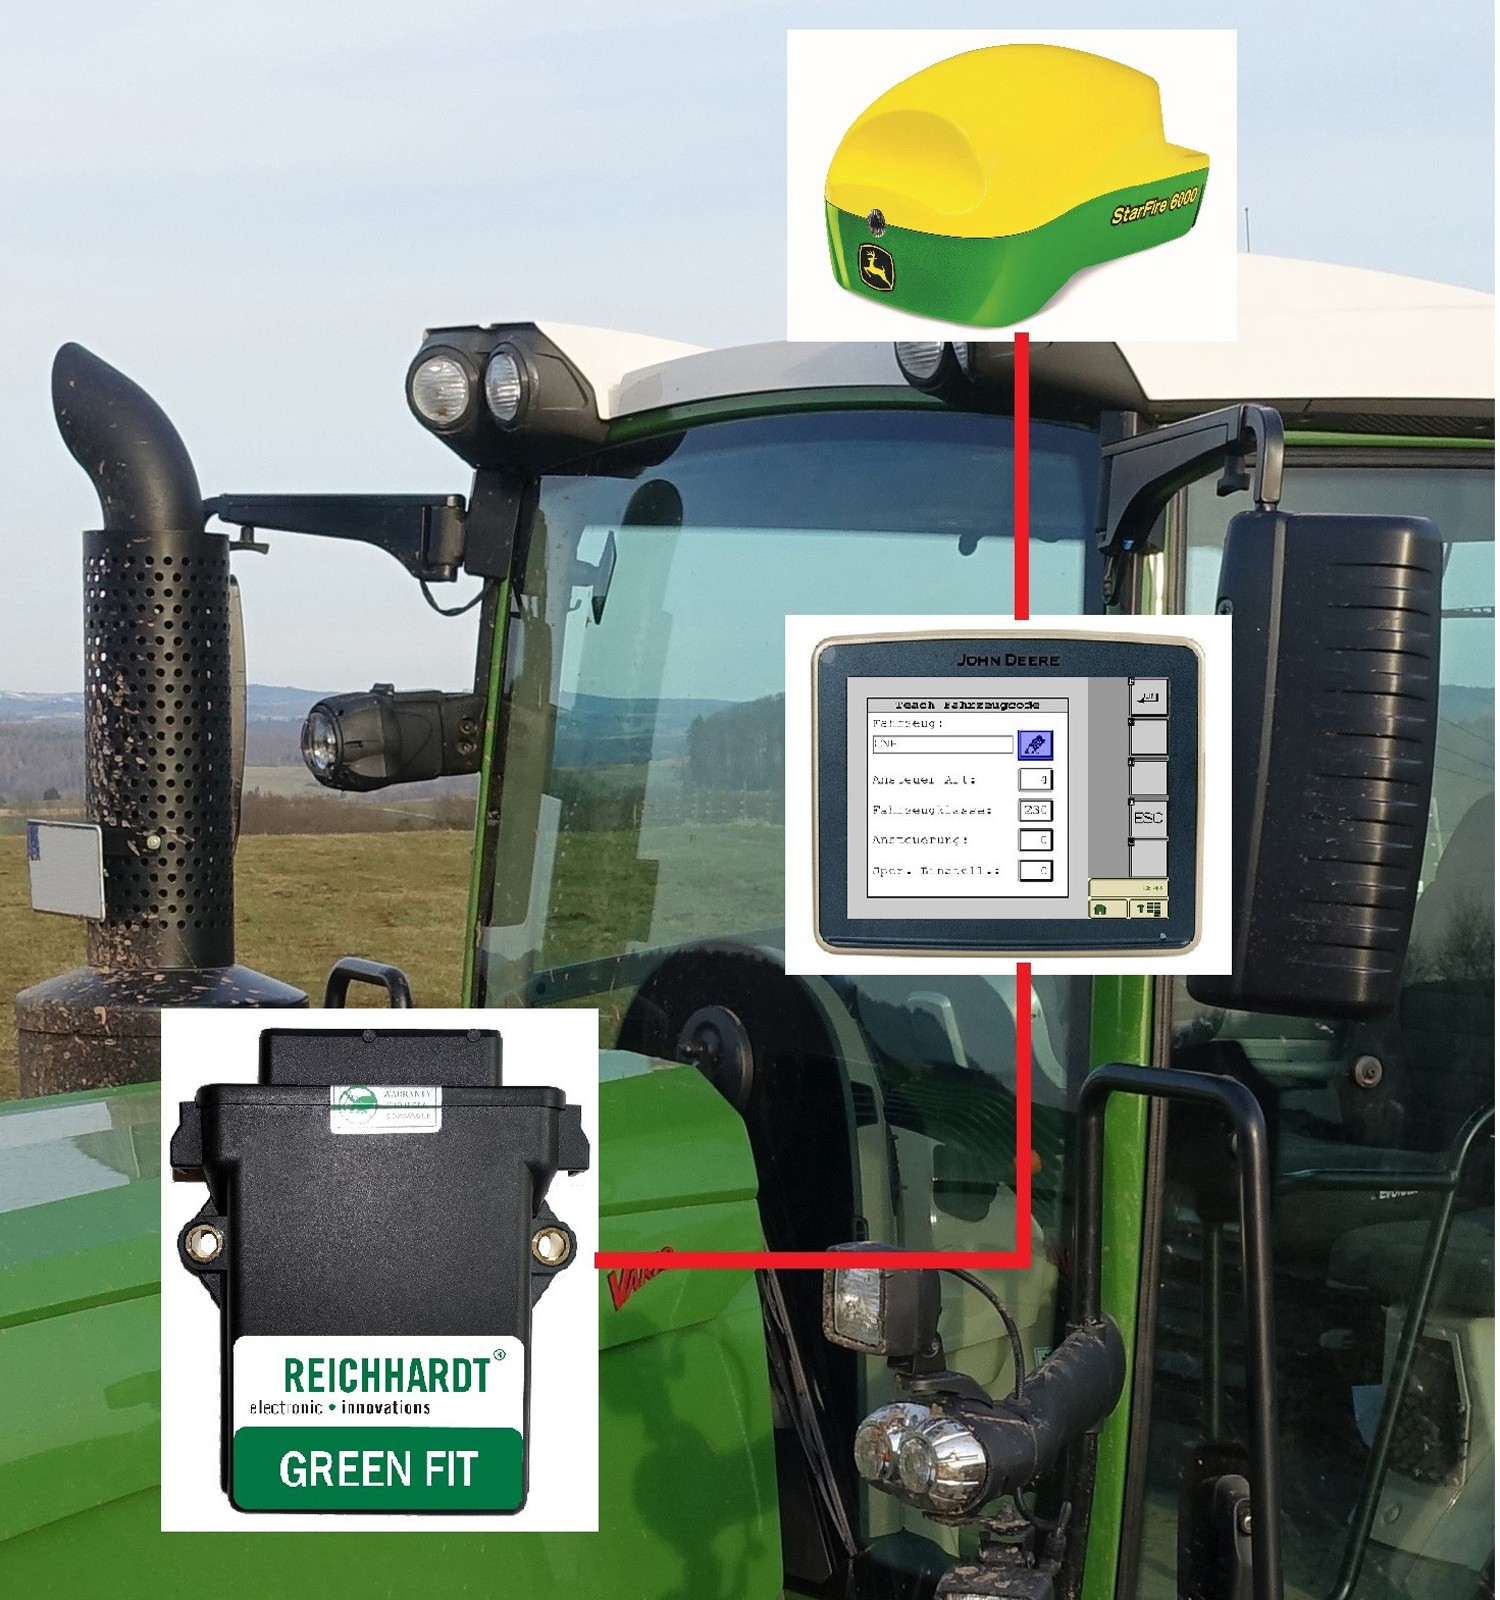 John Deere and Reichhardt partnership announced